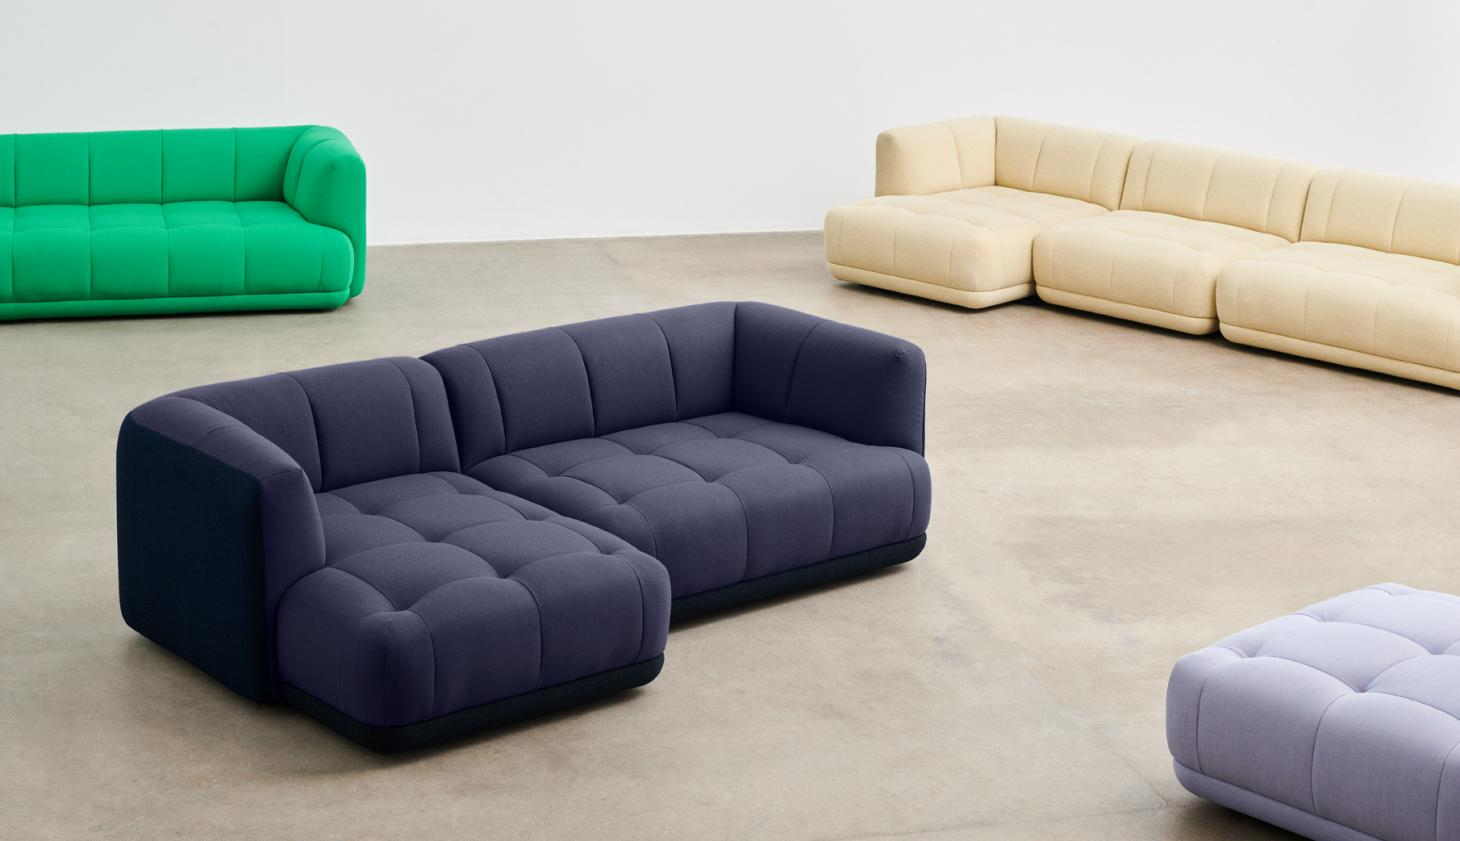 Shot in a studio space with concrete floor, the Quilton sofa is seen here in different configurations, in colours including cream, blue, grey and green